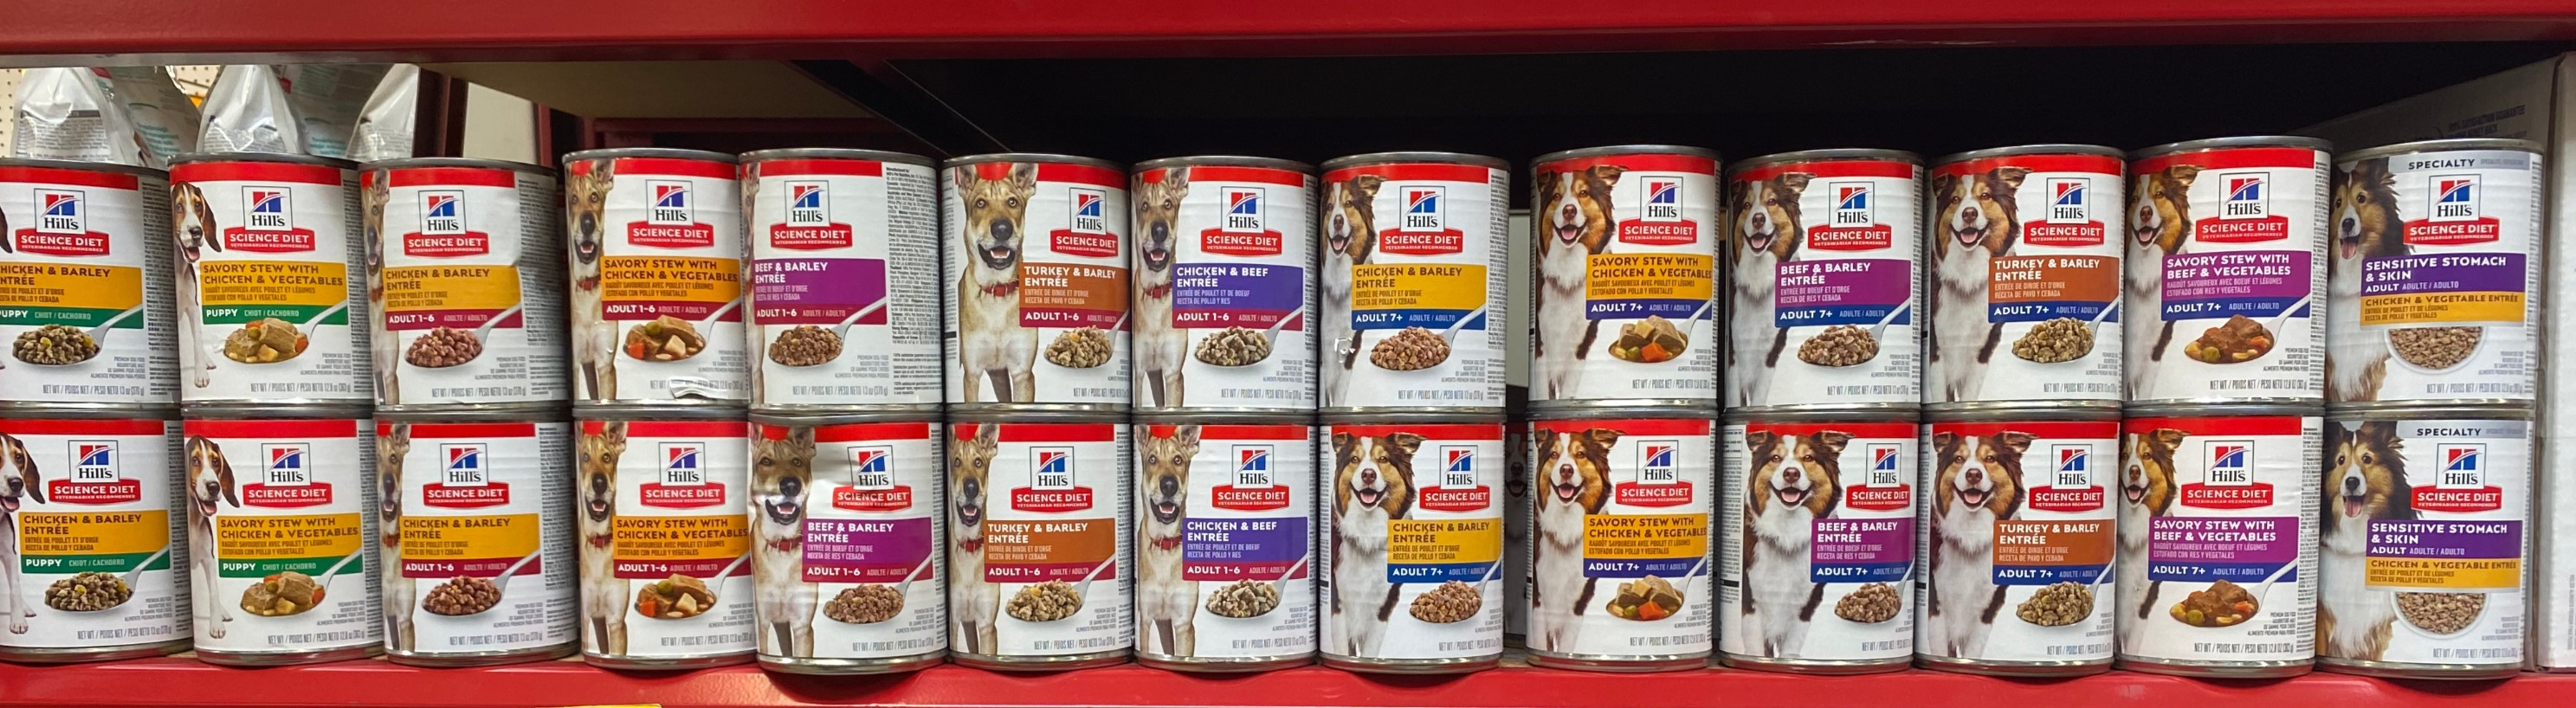 Hill's Science Diet Canned Dog Food